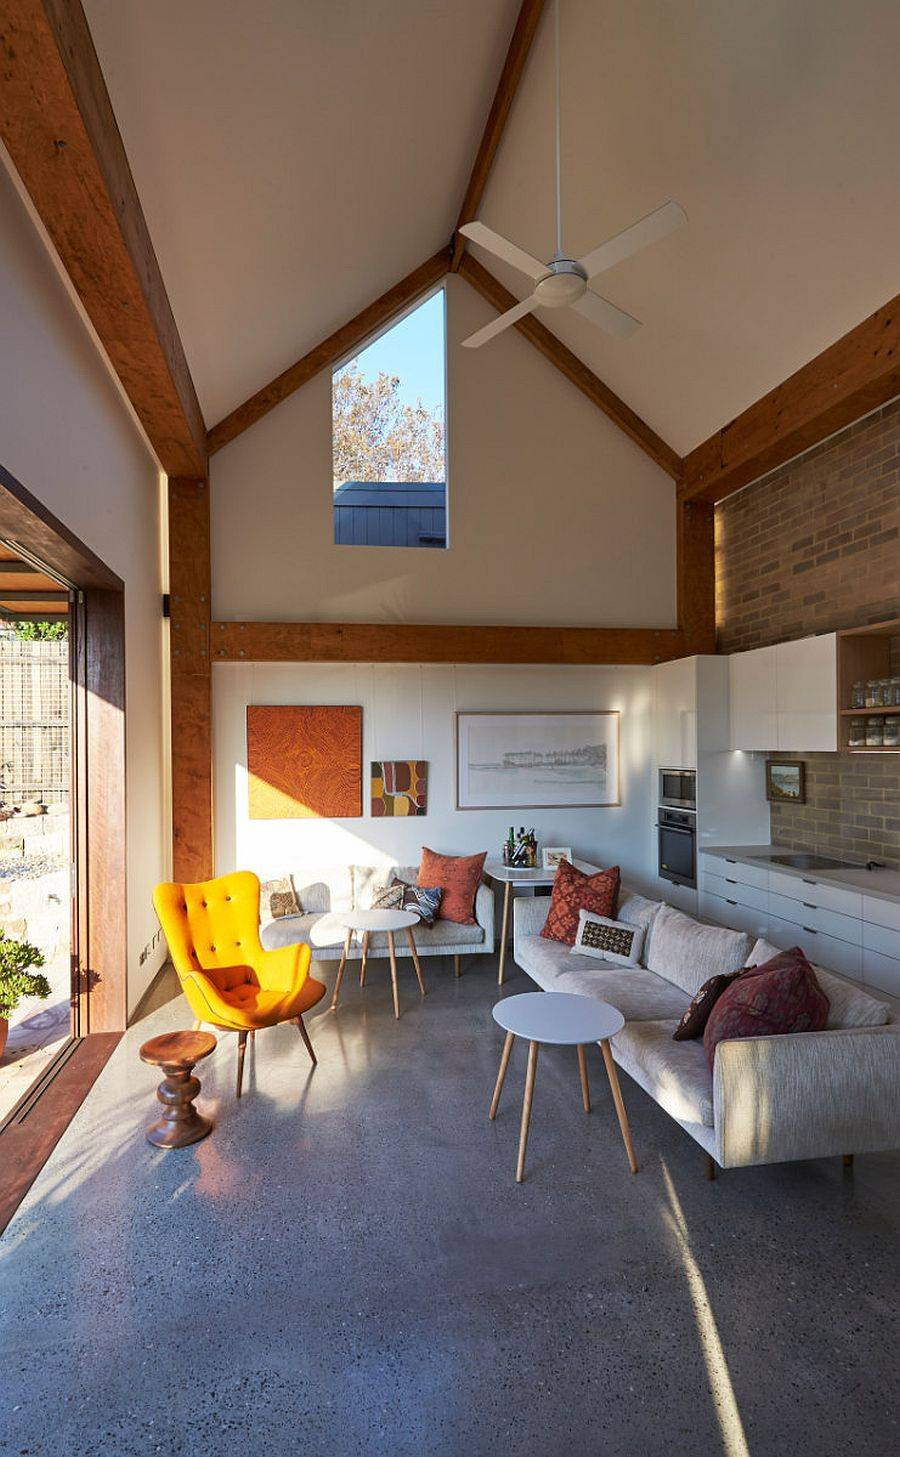 Concrete-floor-and-highly-insulated-walls-give-the-home-a-cozy-interior-even-in-winter-months-52193